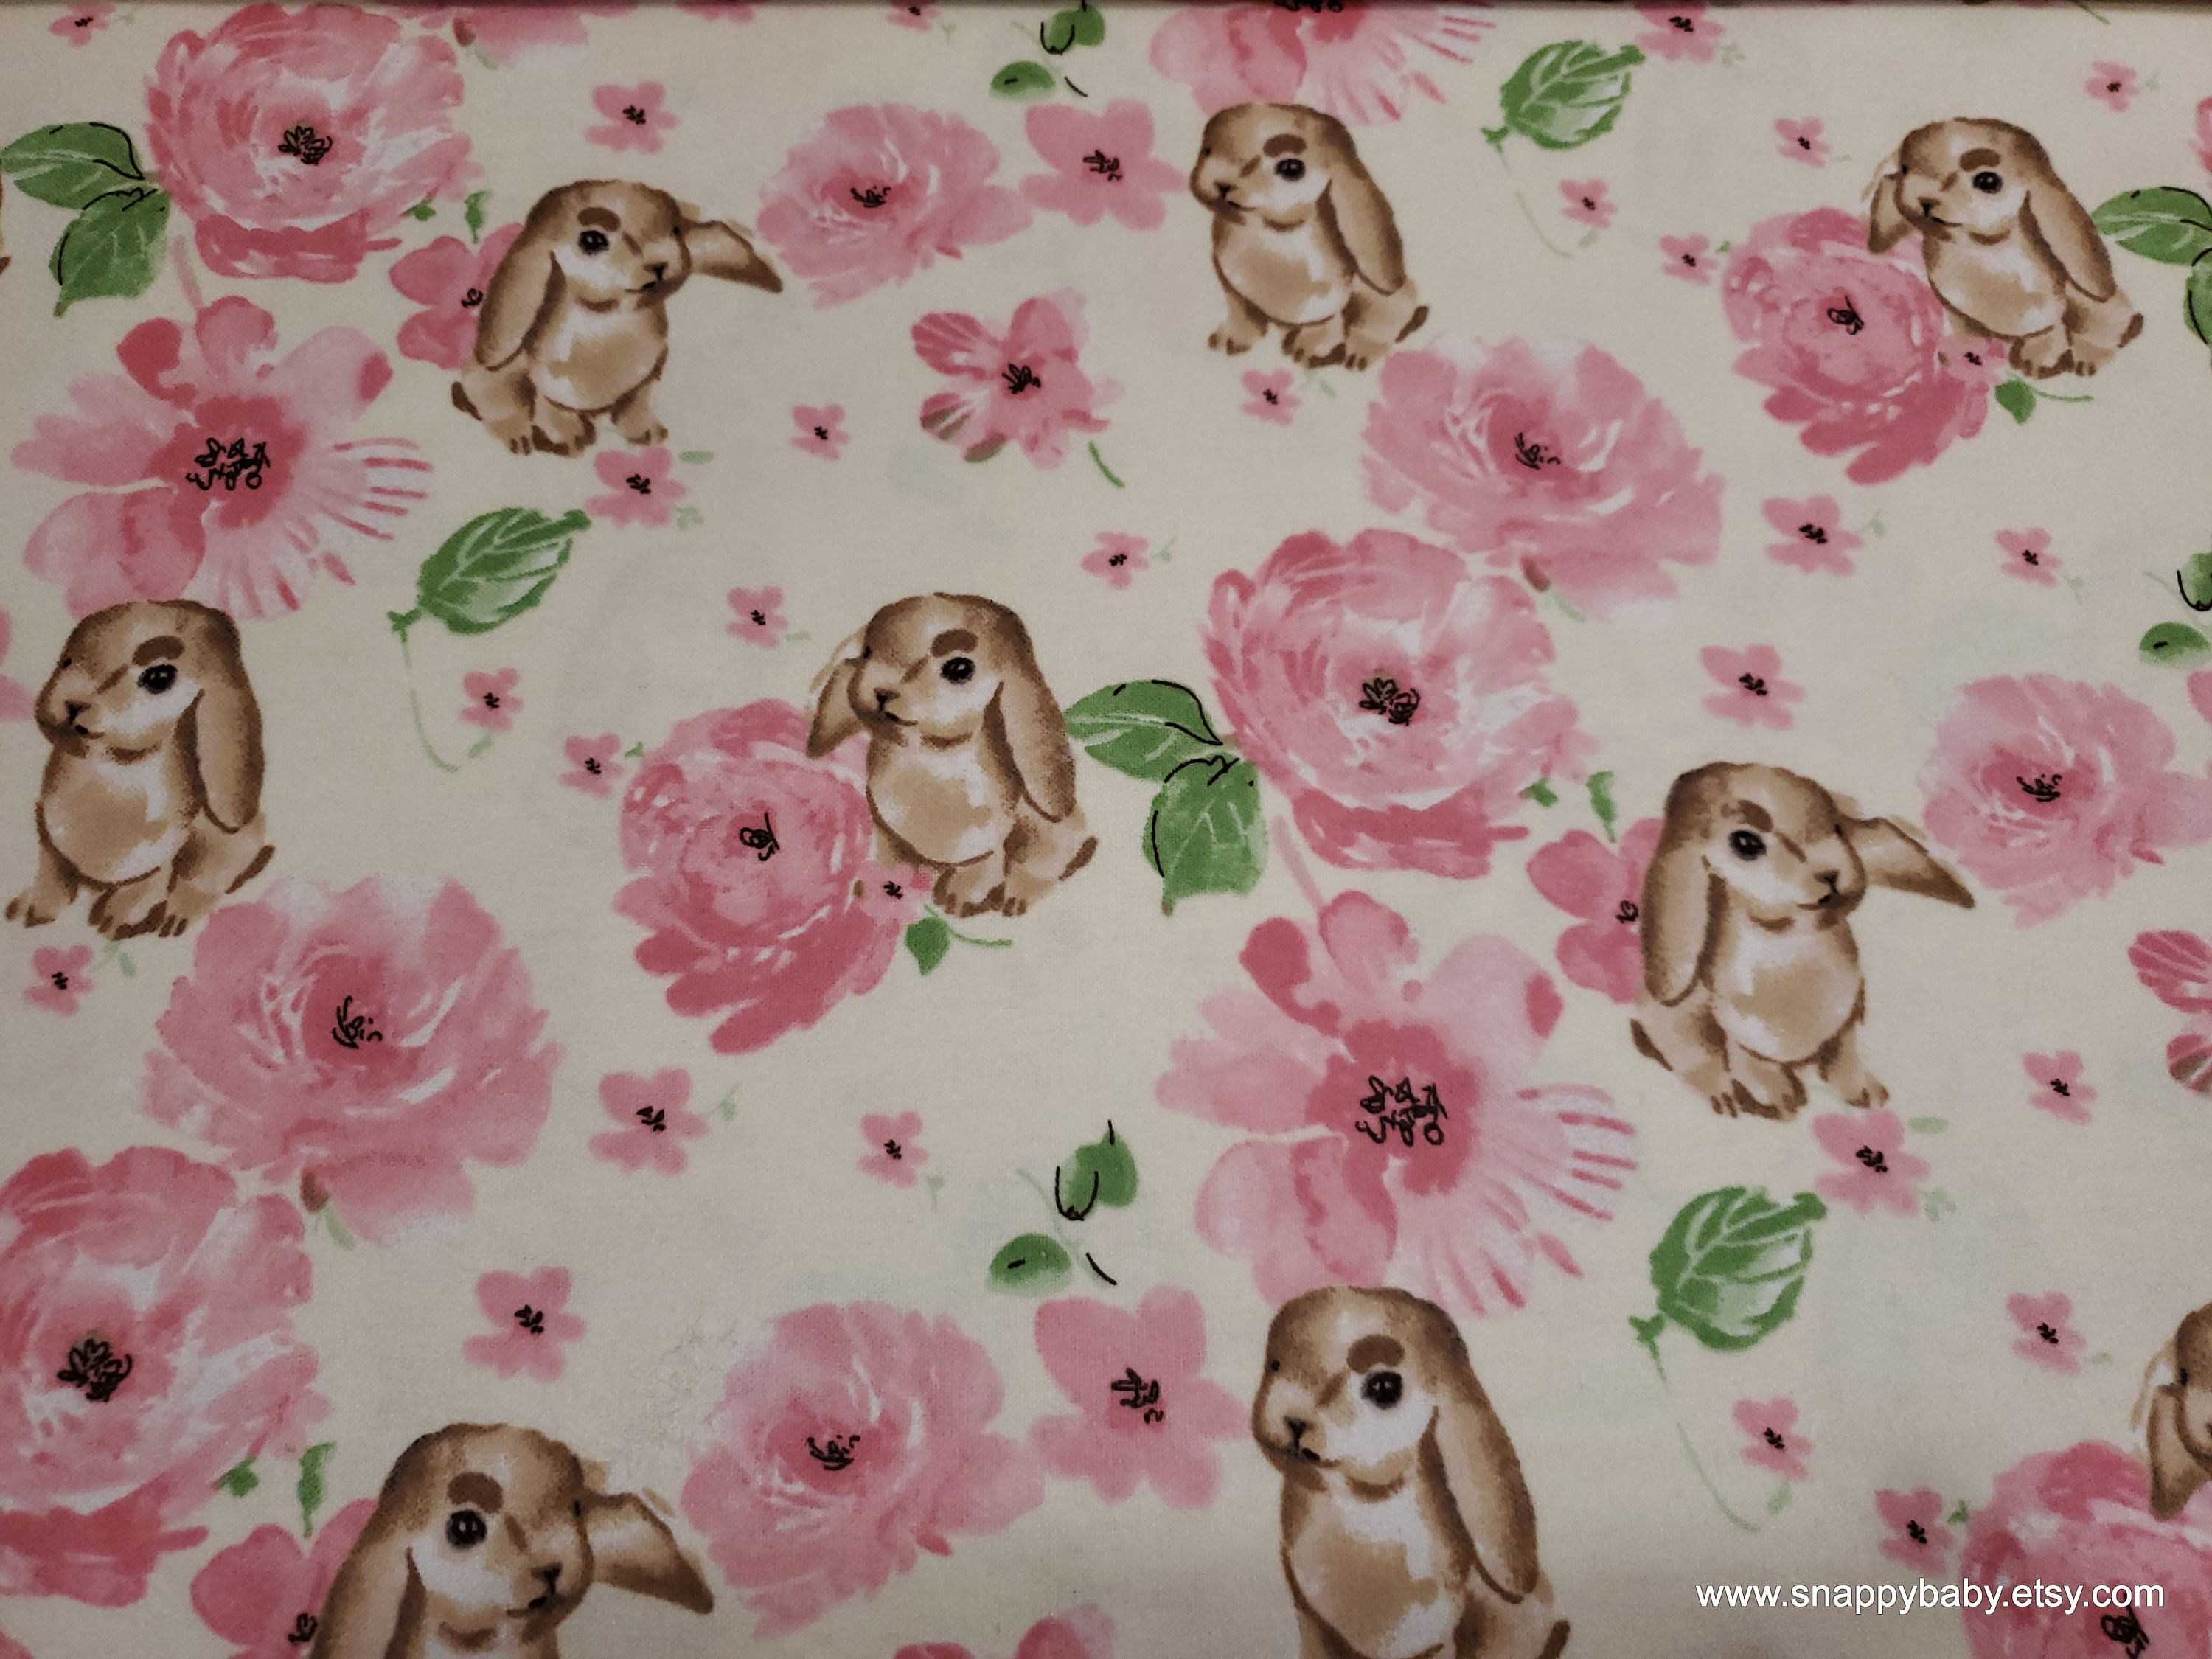 Flannel Fabric Bunny And Rose By The Yard 100 Cotton Flannel Fabric Flannel Things To Sell